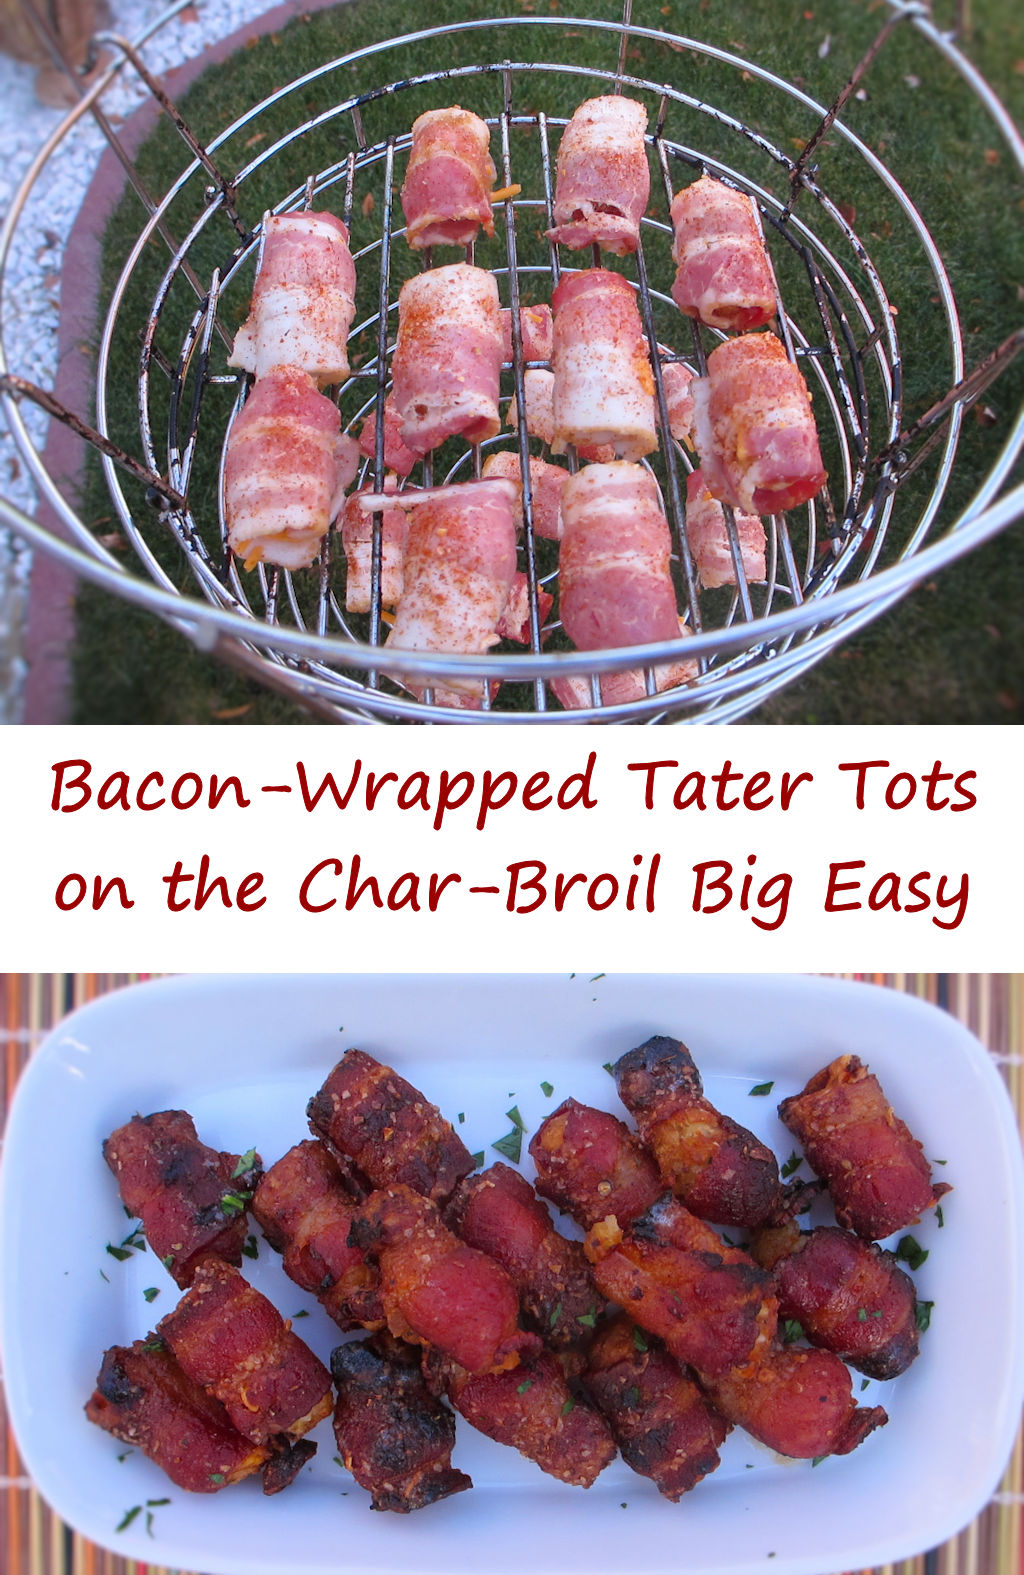 Recipes for char broil big easy